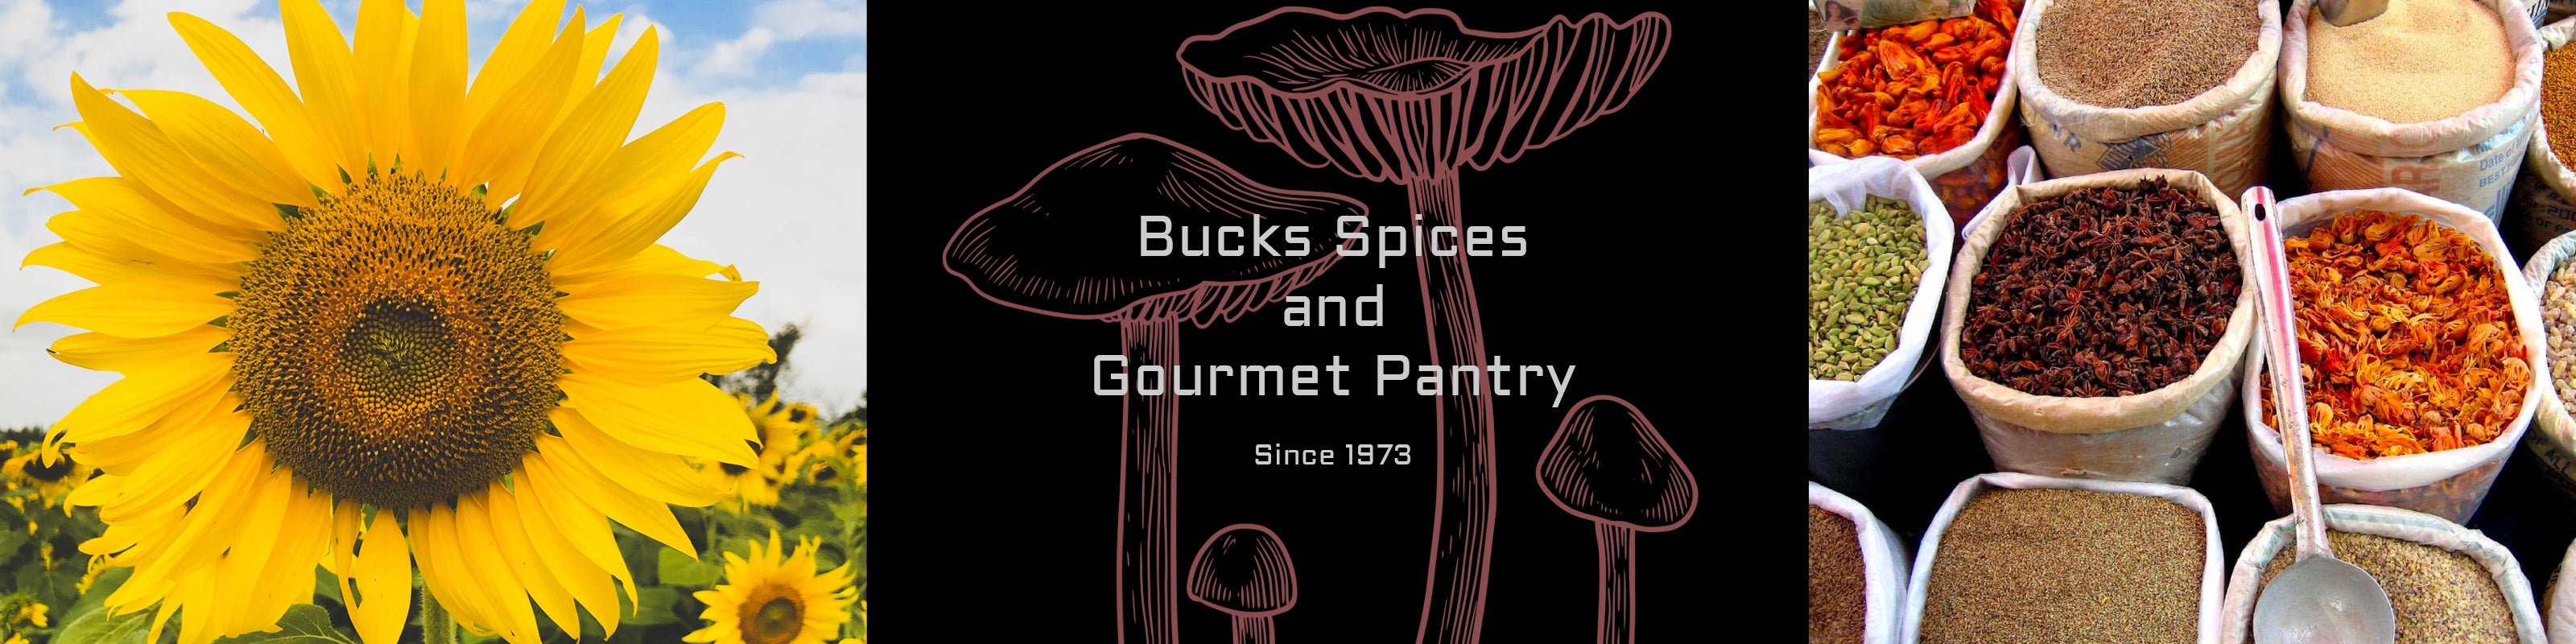 Bucks Spices Logo